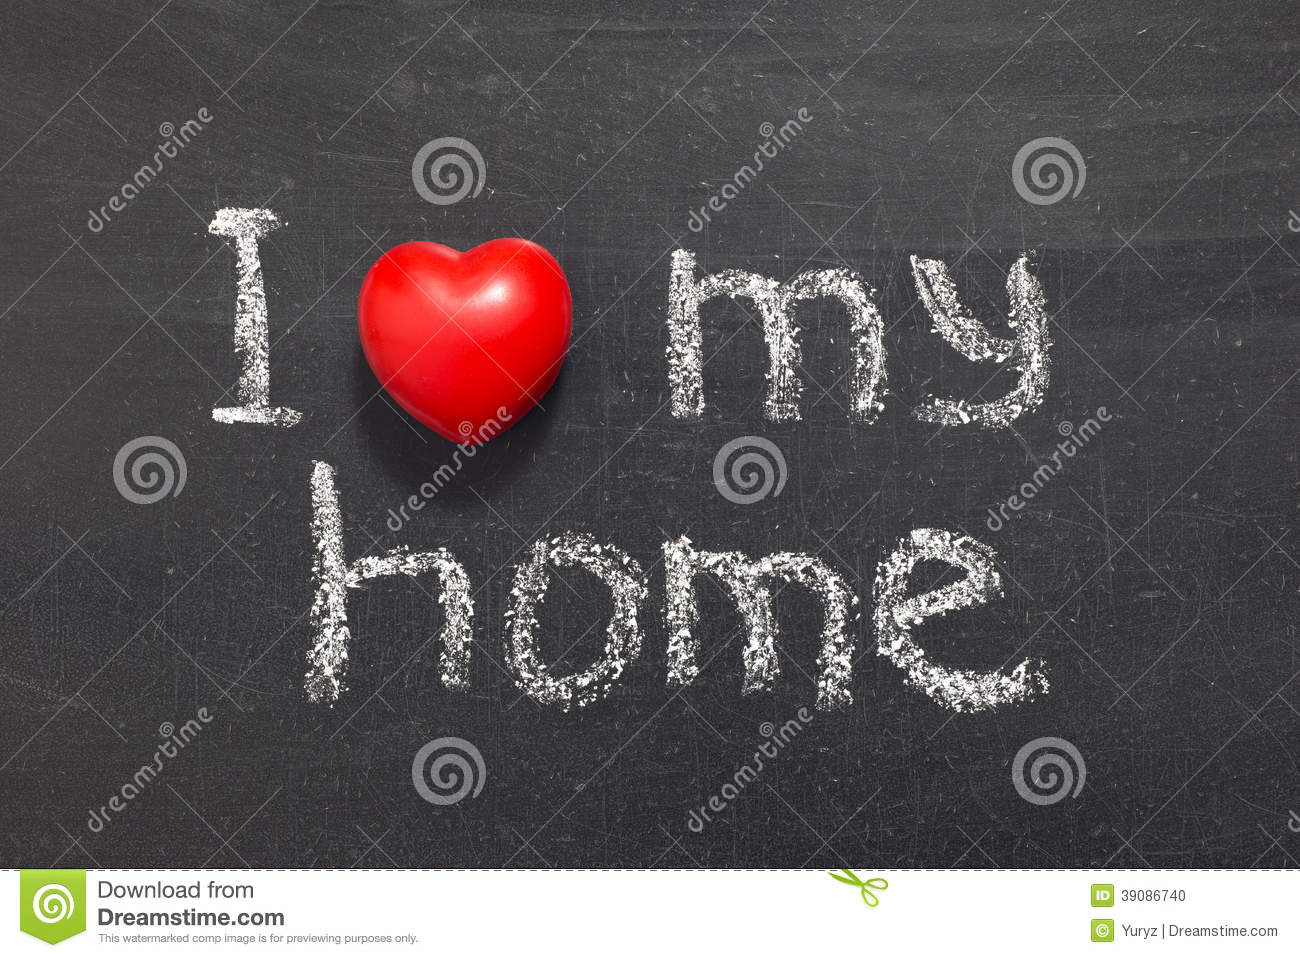 Love my home stock photo image 39086740 for Lovers home